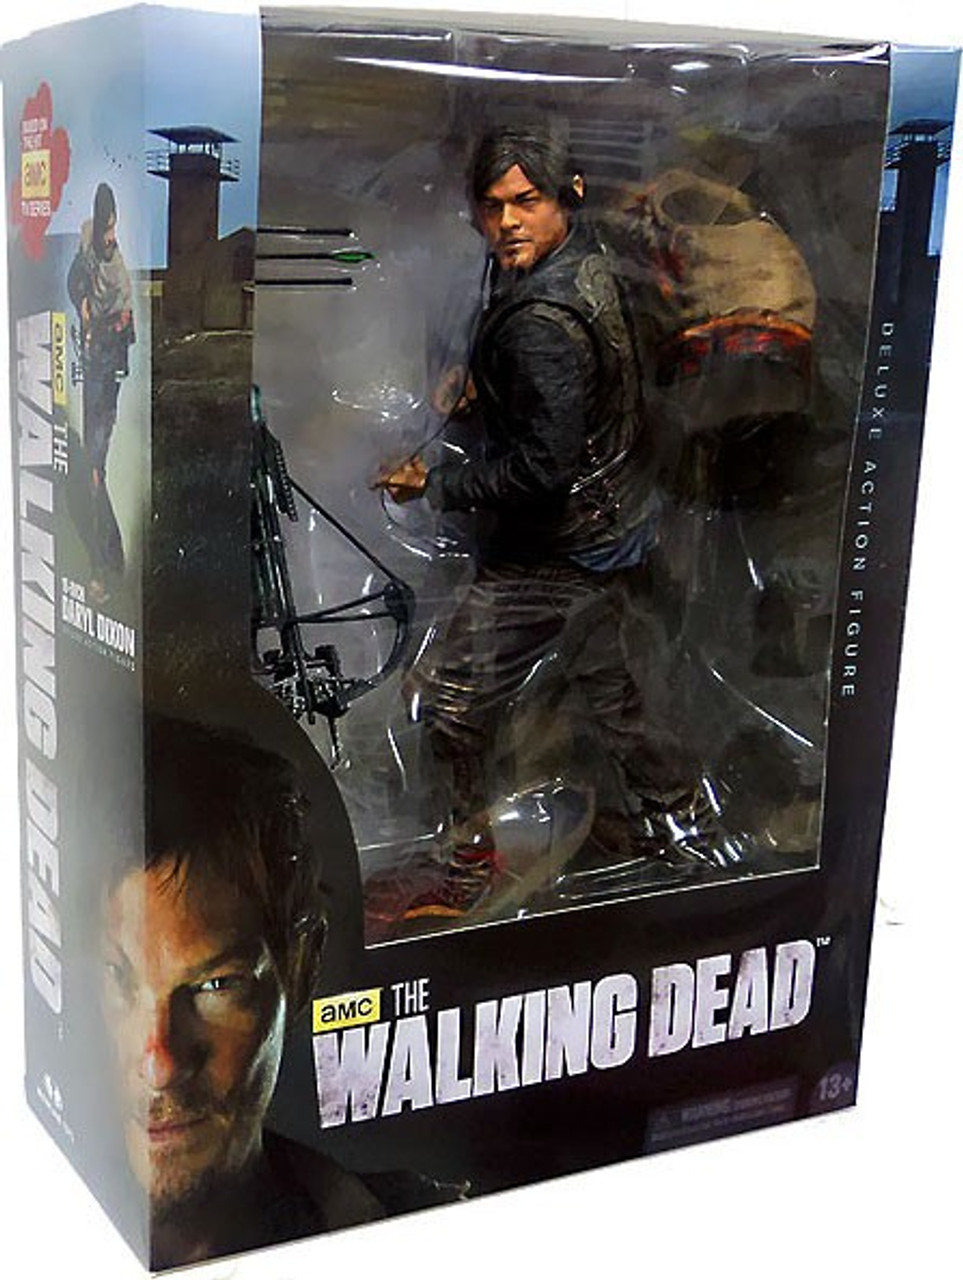 McFarlane Toys The Walking Dead AMC TV Daryl Dixon Deluxe Action Figure  [Damaged Package]